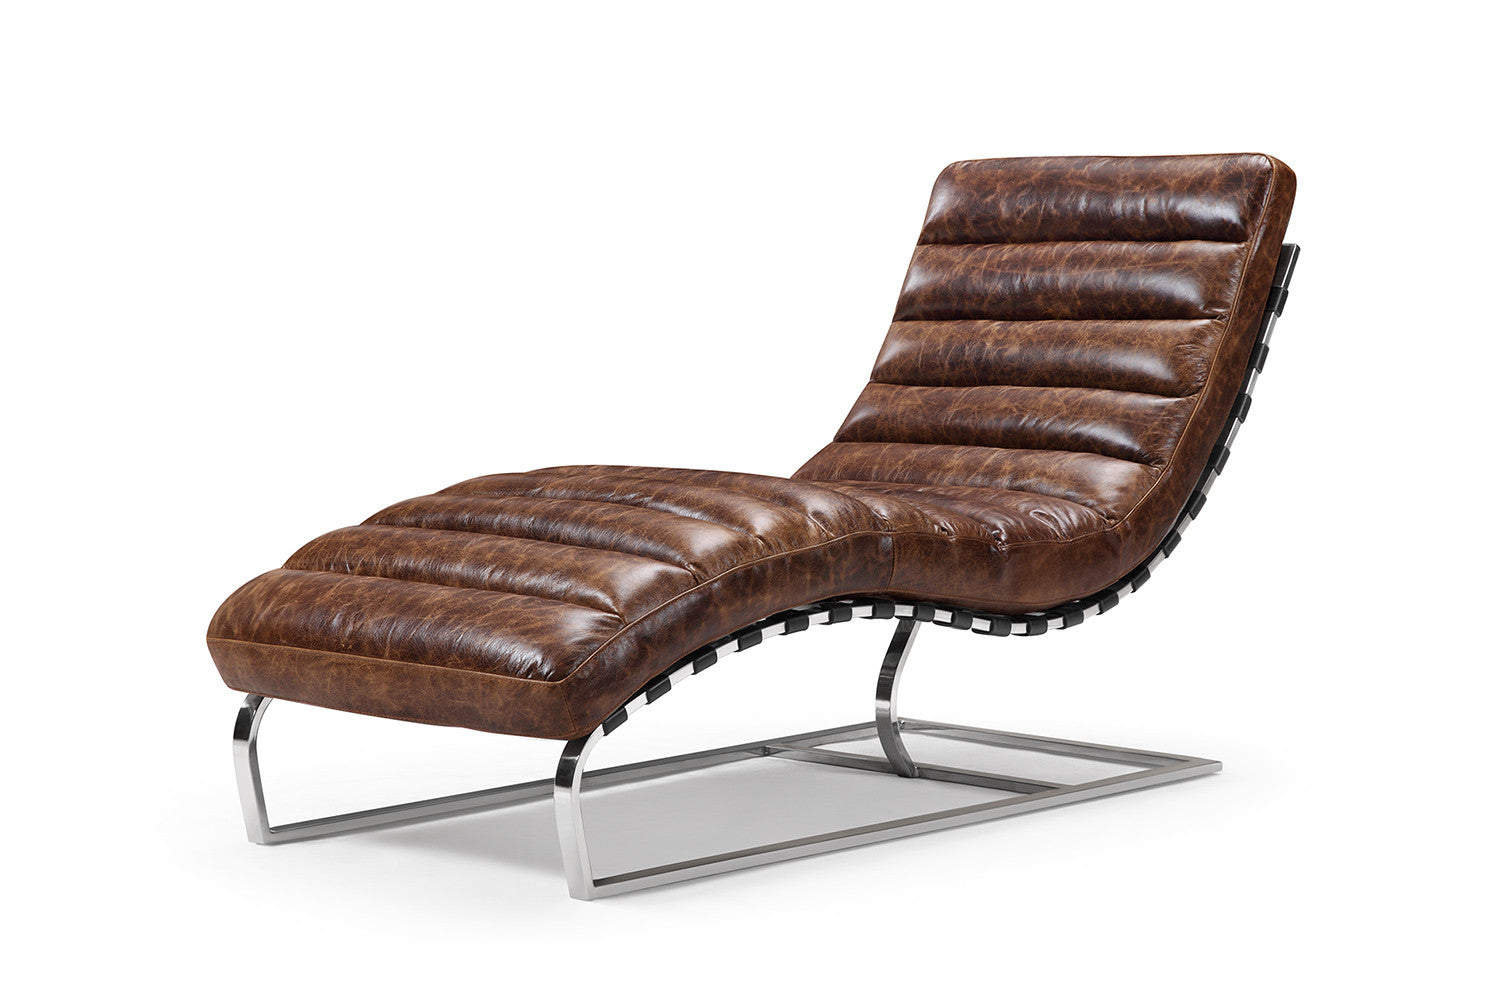 The leather chaise lounge rose and moore for Chaise leather lounge